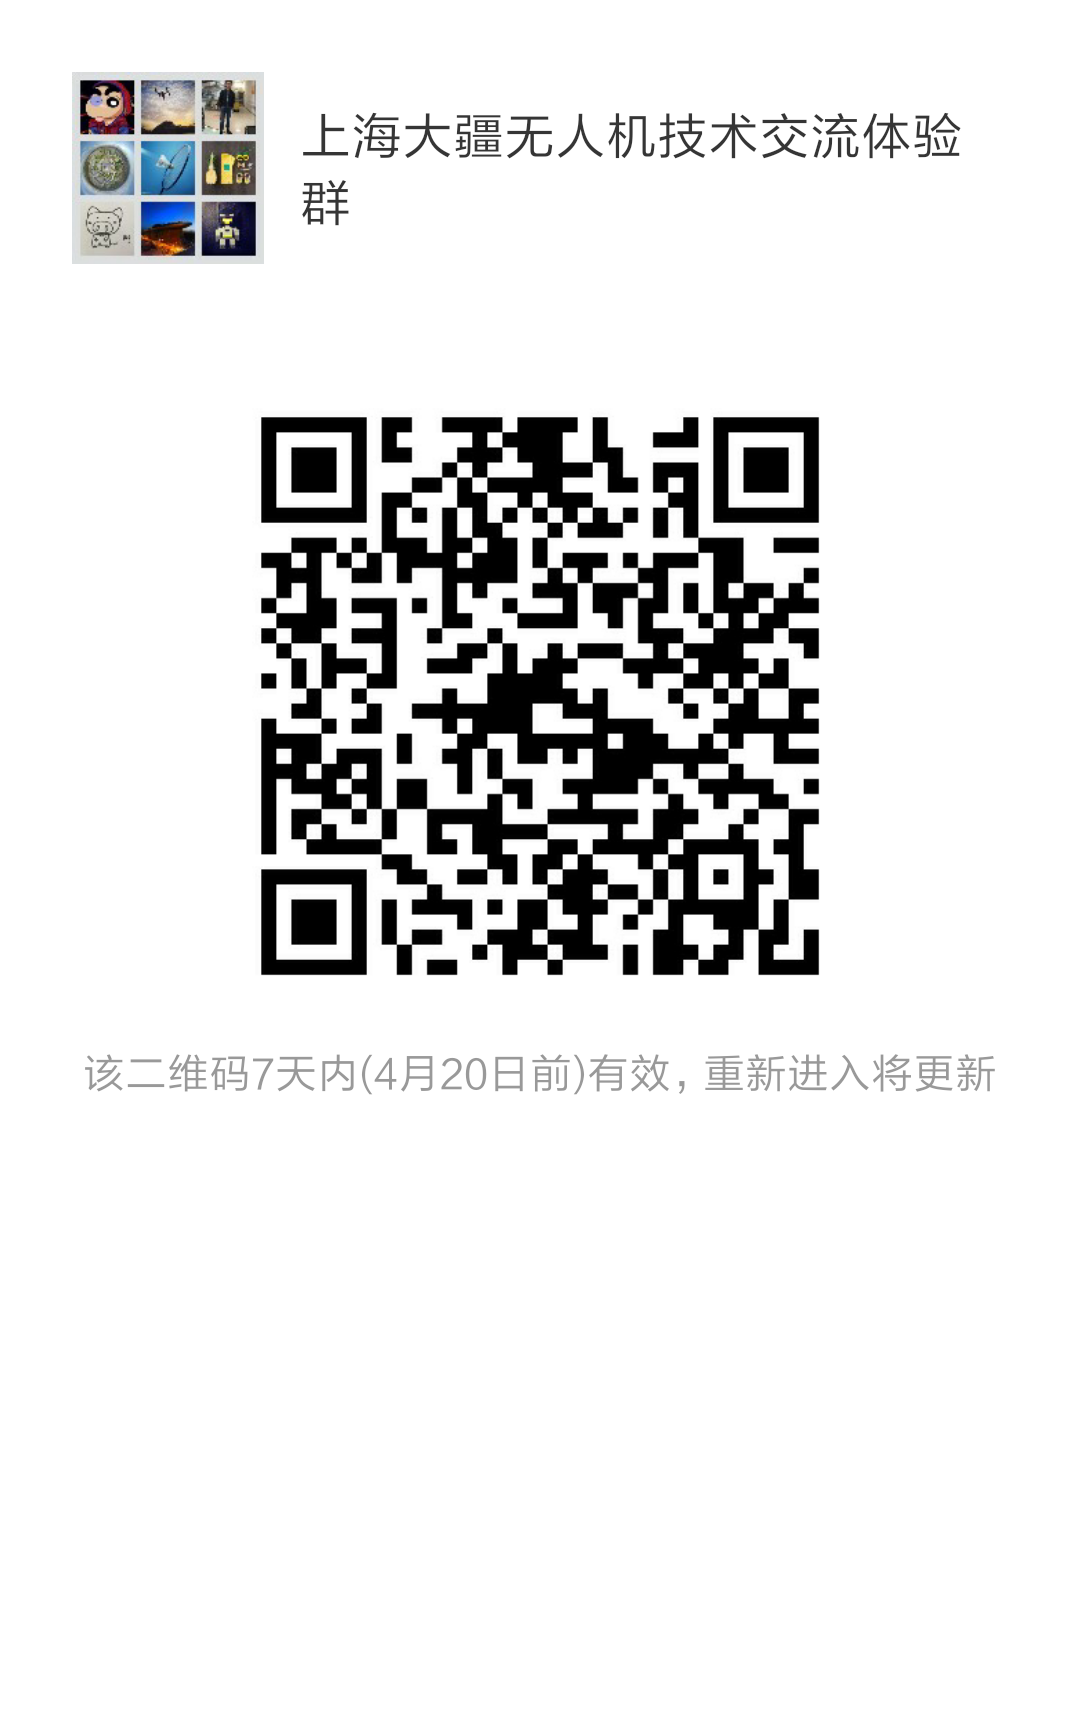 mmqrcode1460555373453.png